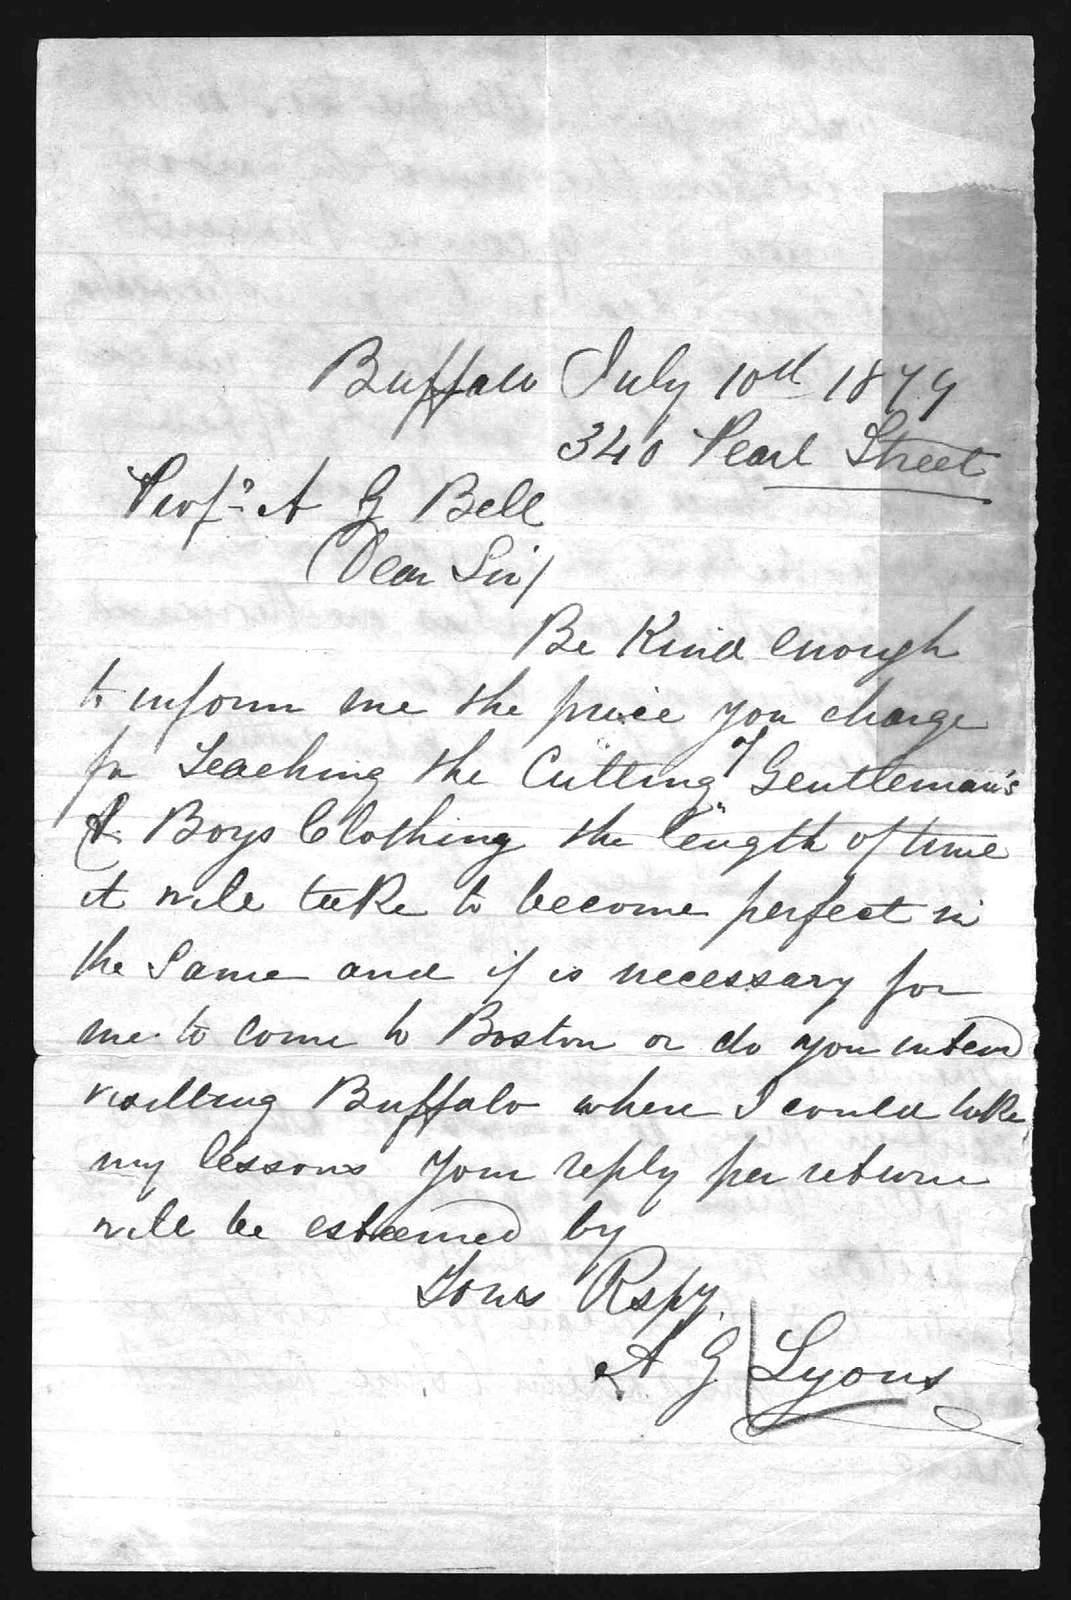 Letter from A.G. Lyons to Alexander Graham Bell, August 10, 1879